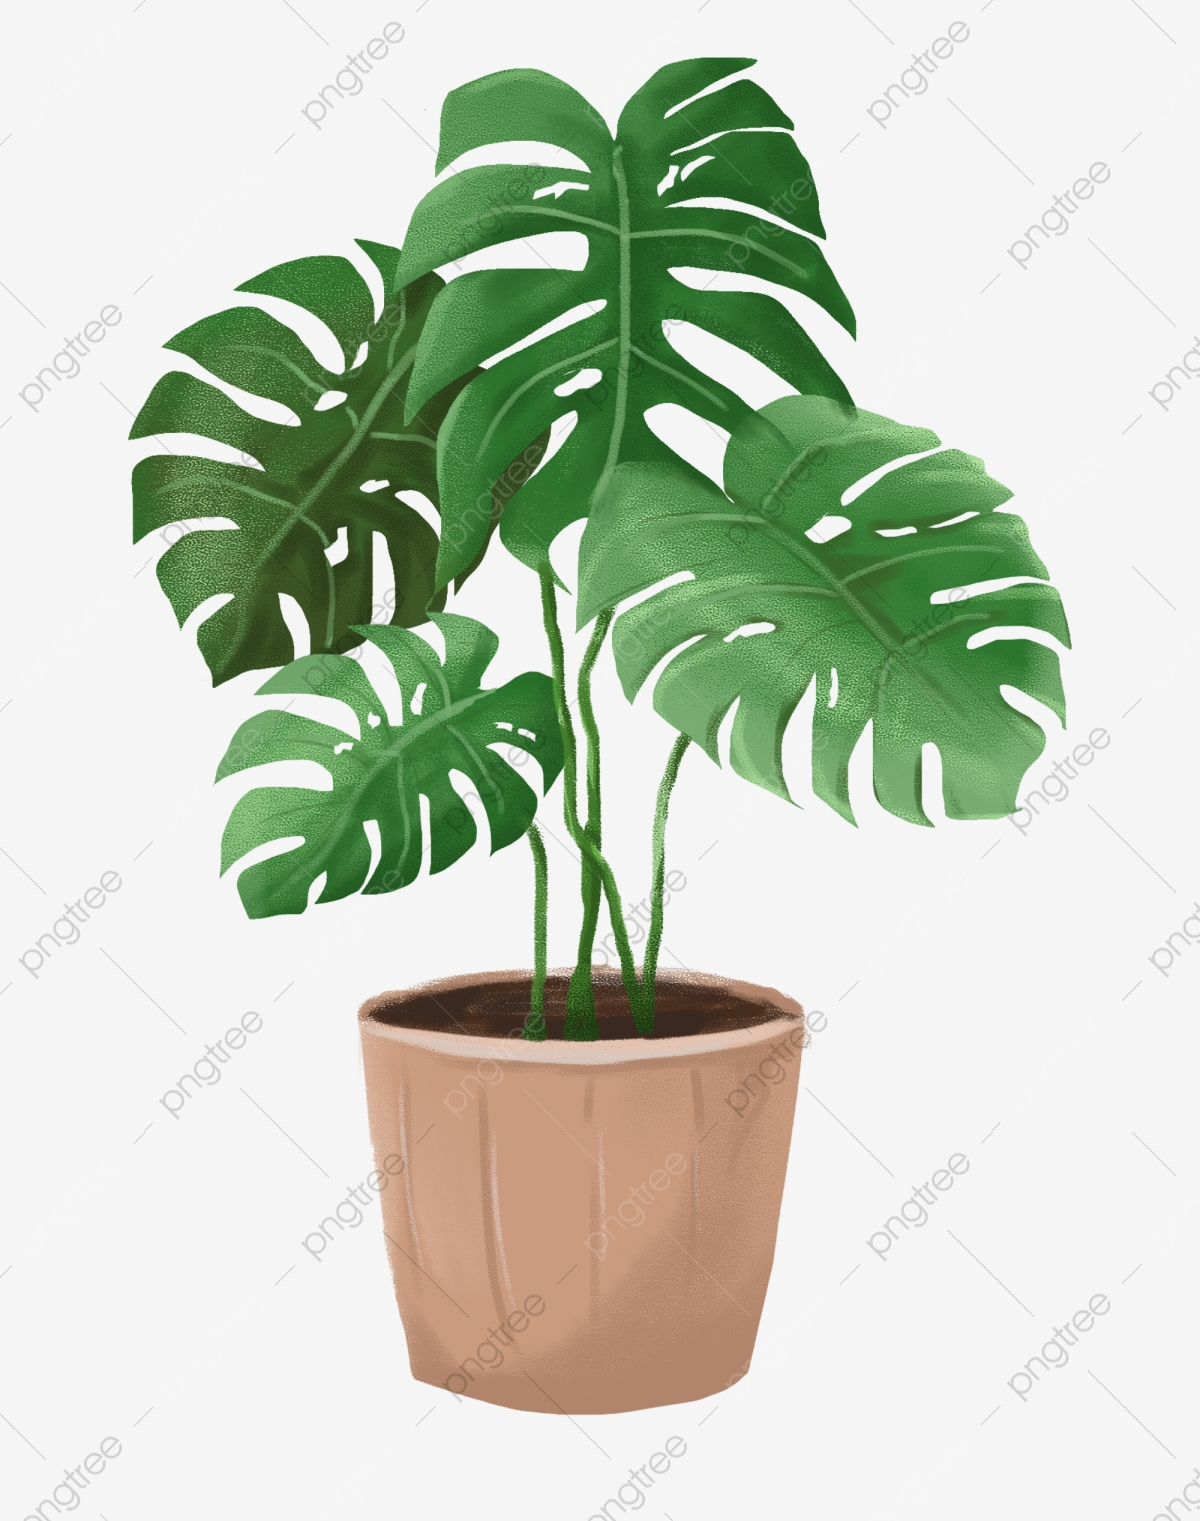 Flower Pot Png Vector Psd And Clipart With Transparent Background For Free Download Pngtree Potted trees trees to plant plant leaves christmas origami christmas tree pine seeds pine tree painting fast growing trees shade trees. https pngtree com freepng brown flower pot green leaves plantain leaf plant cartoon illustration 3864982 html